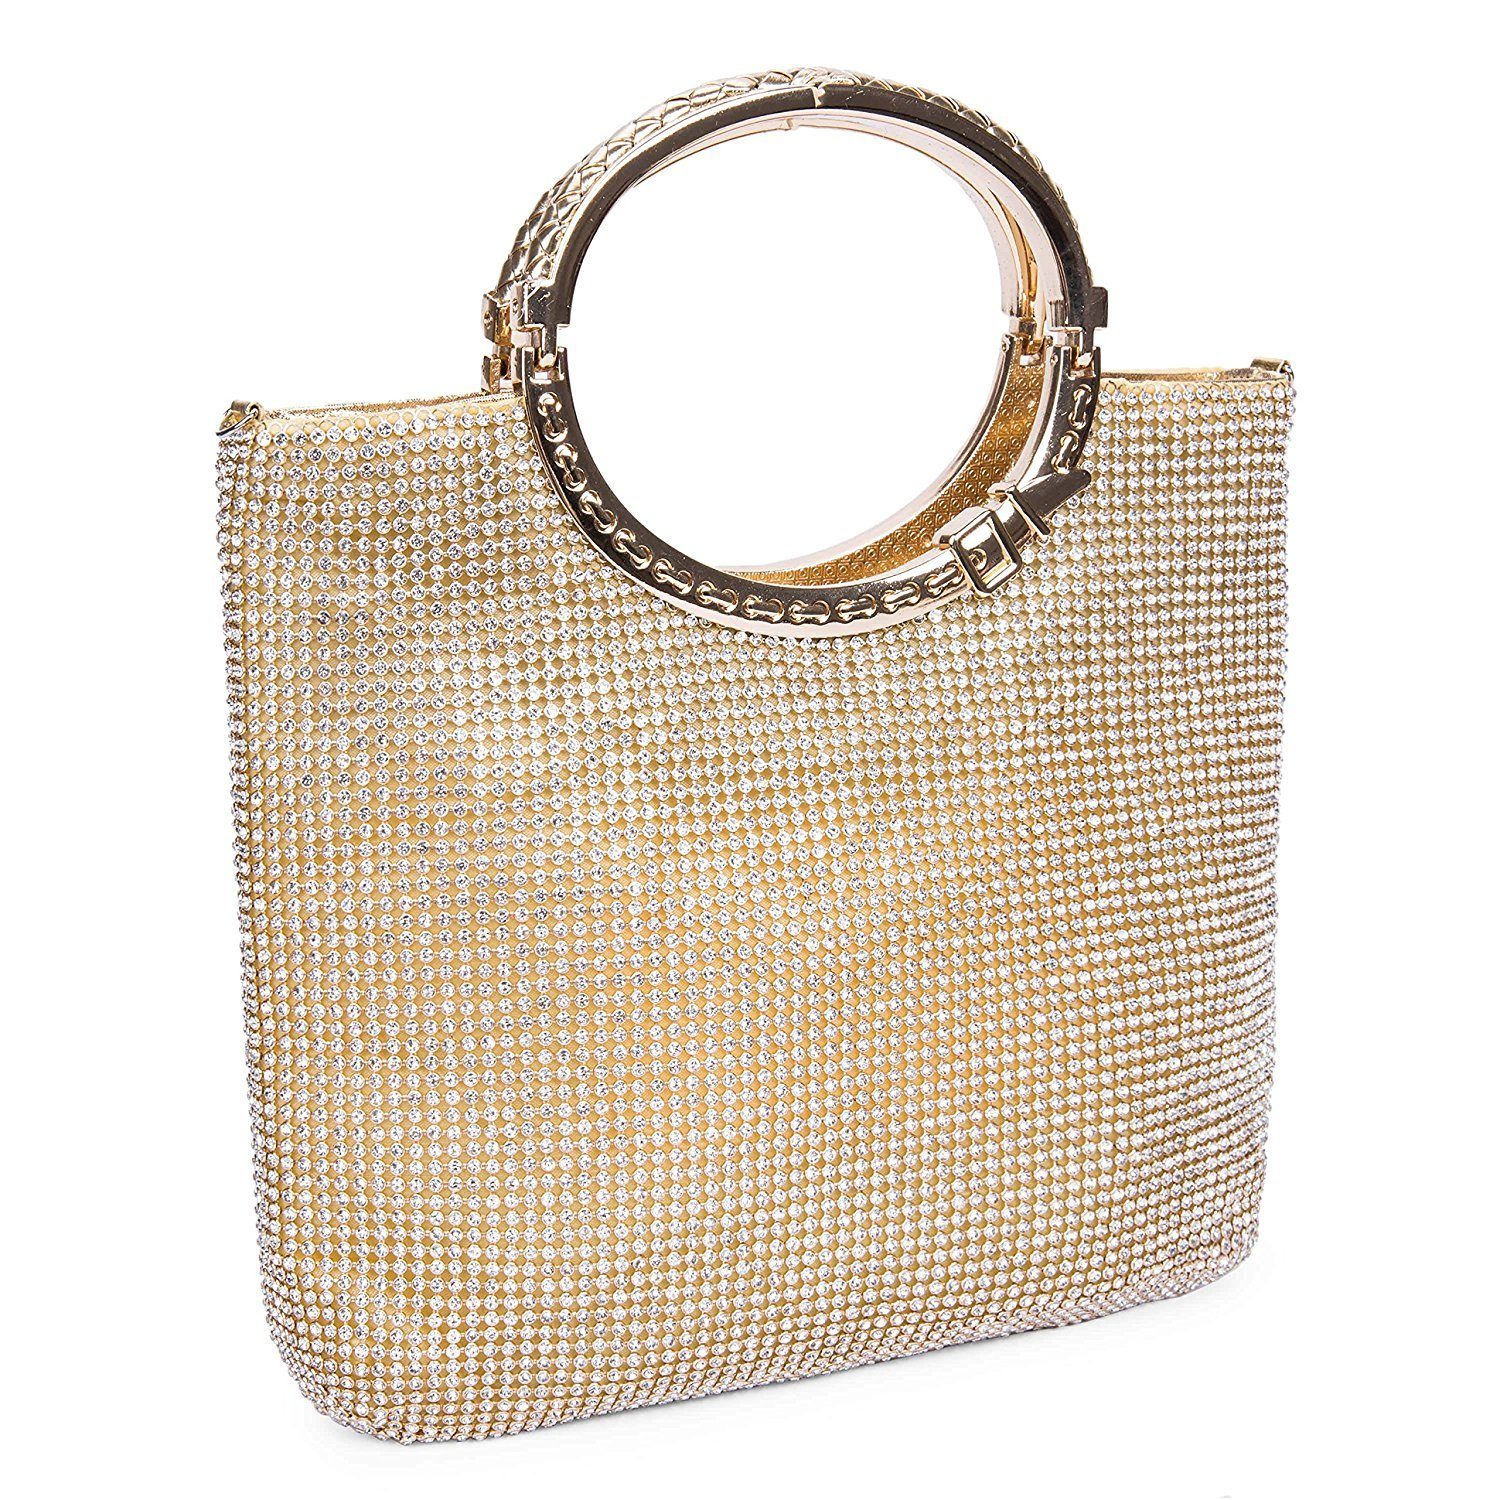 de34331b9a4 EULovelyPrice Women's Fashion Crystal Rhinestone Evening Clutches Bags  Wedding Purse with Bow Fram